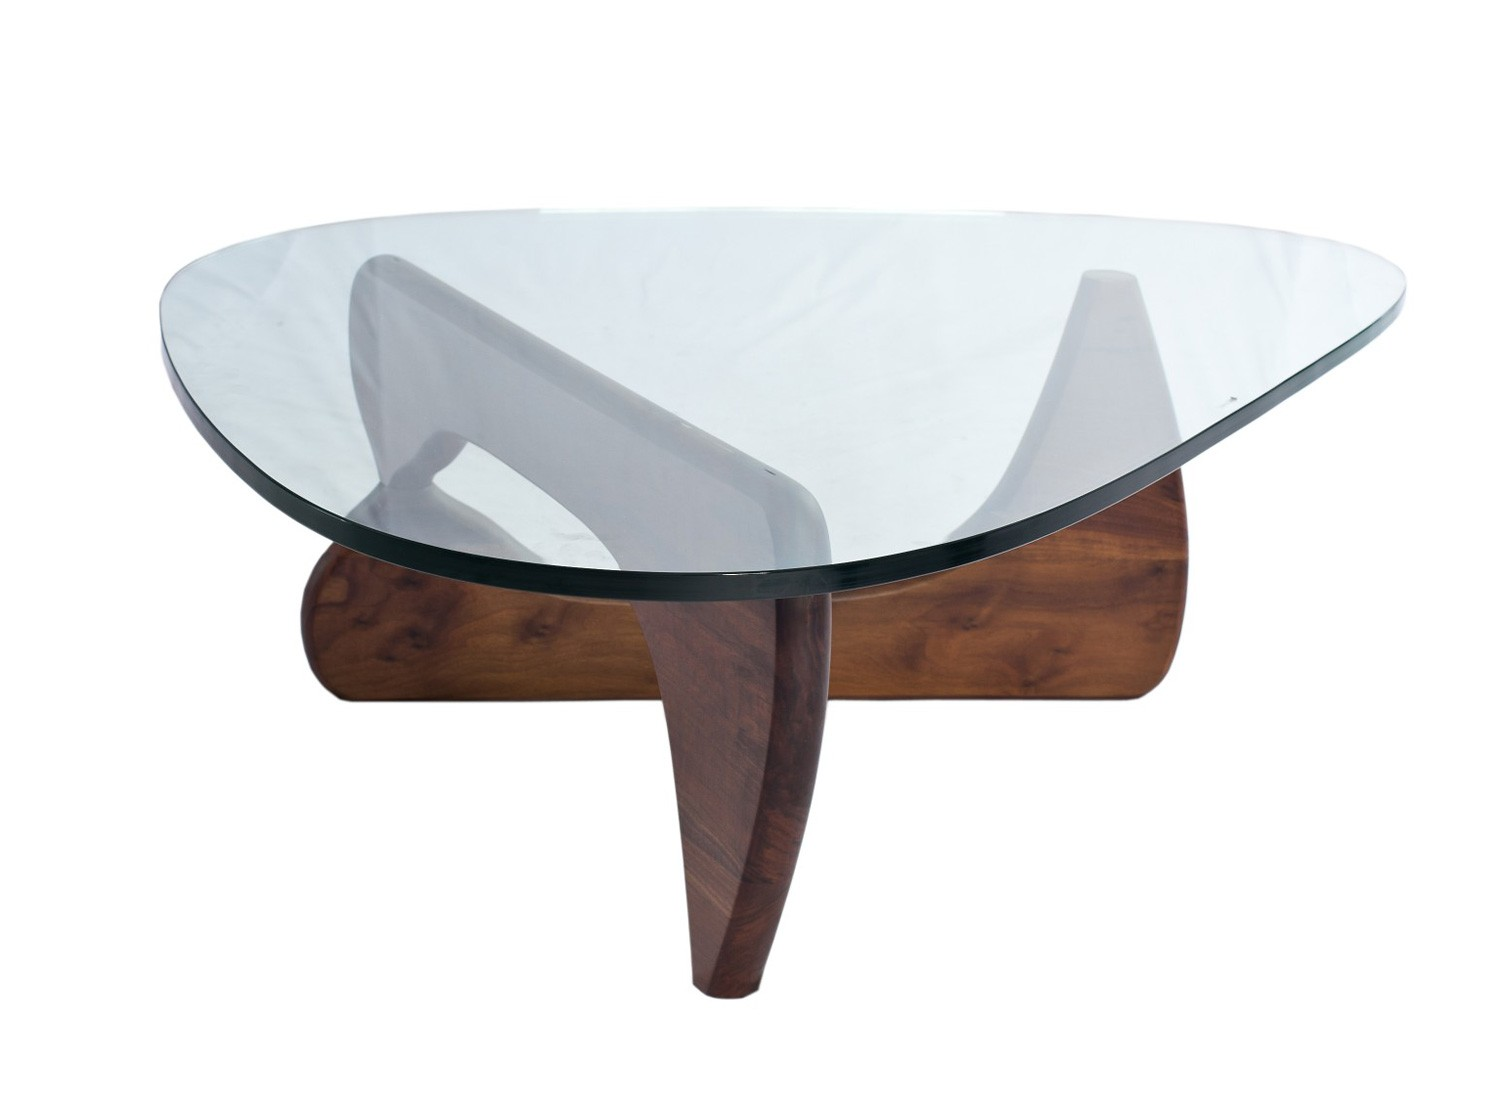 Replica noguchi coffee table Noguchi replica coffee table